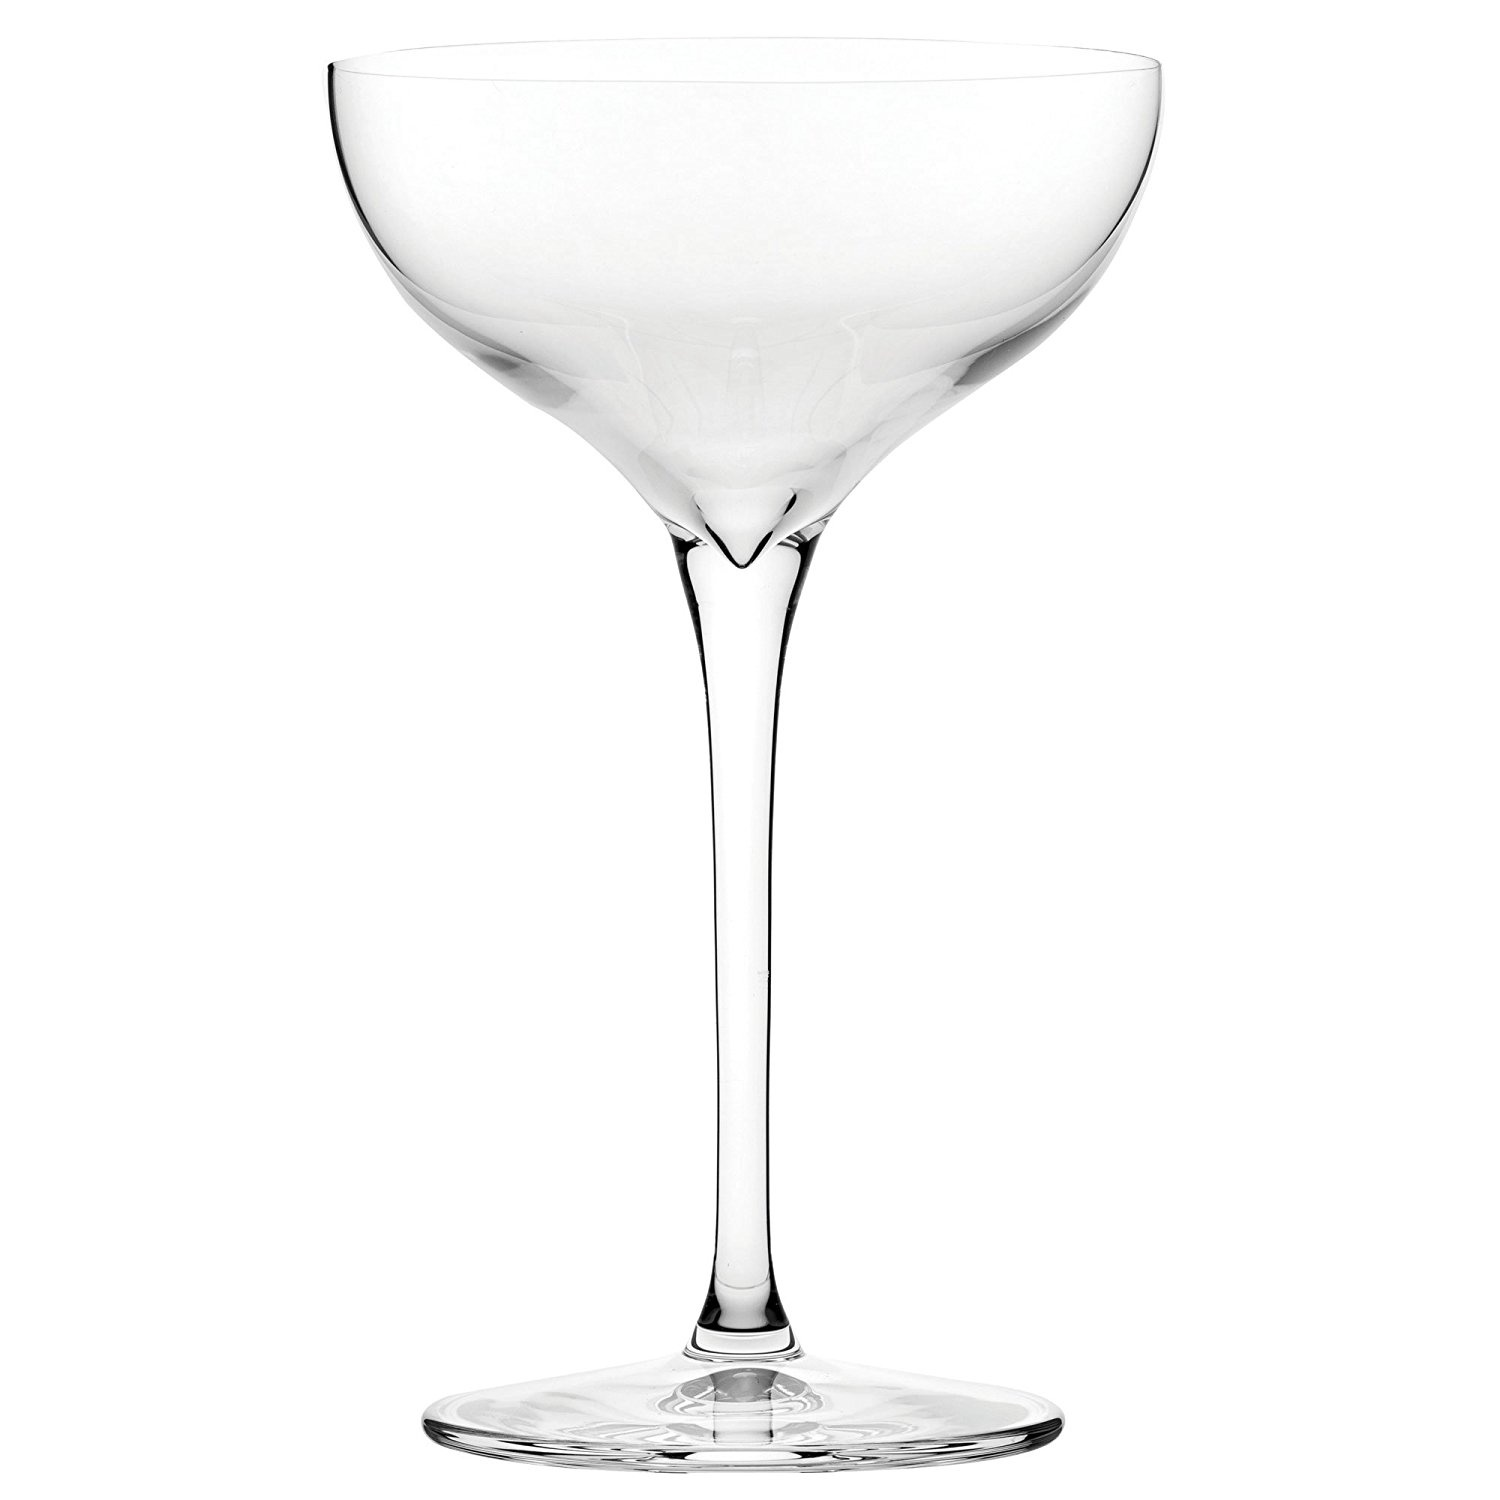 Terroir Champagne Coupe Glasses Set Of 6 Utopia Cocktail Glasses Champagne Saucers By Utopia Tableware Shop Online For Kitchen In Australia